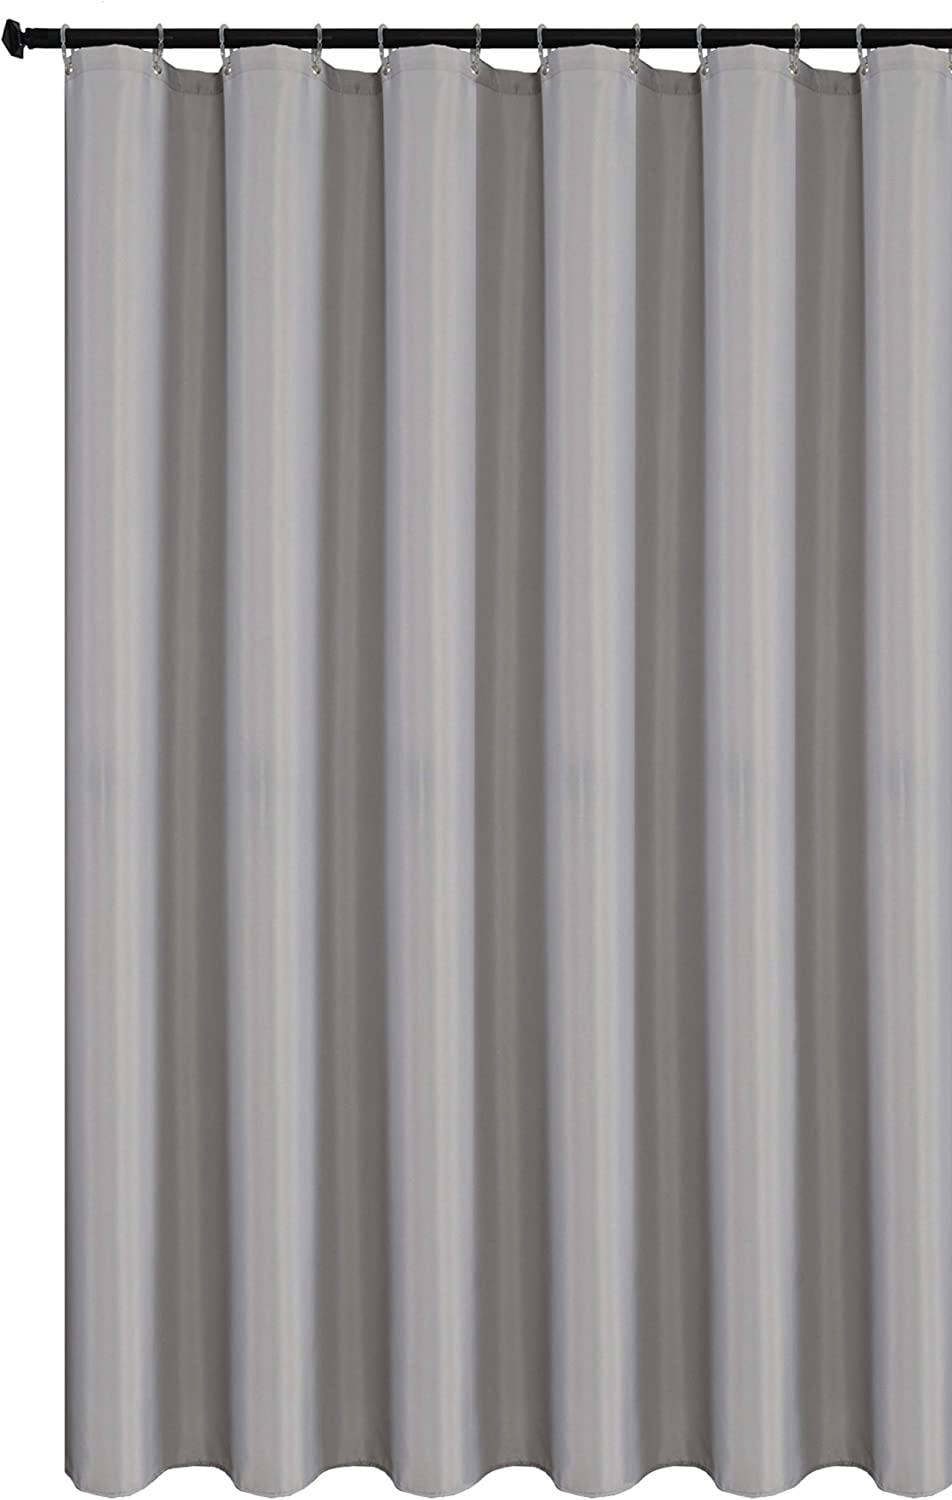 Biscaynebay Hotel Quality Fabric Shower Curtain Liners, Water Resistant Bathroom Curtains, Rust Resistant Grommets Top Weighted Bottom Machine Washable, Silver Grey 72 Inch by 72 Inch